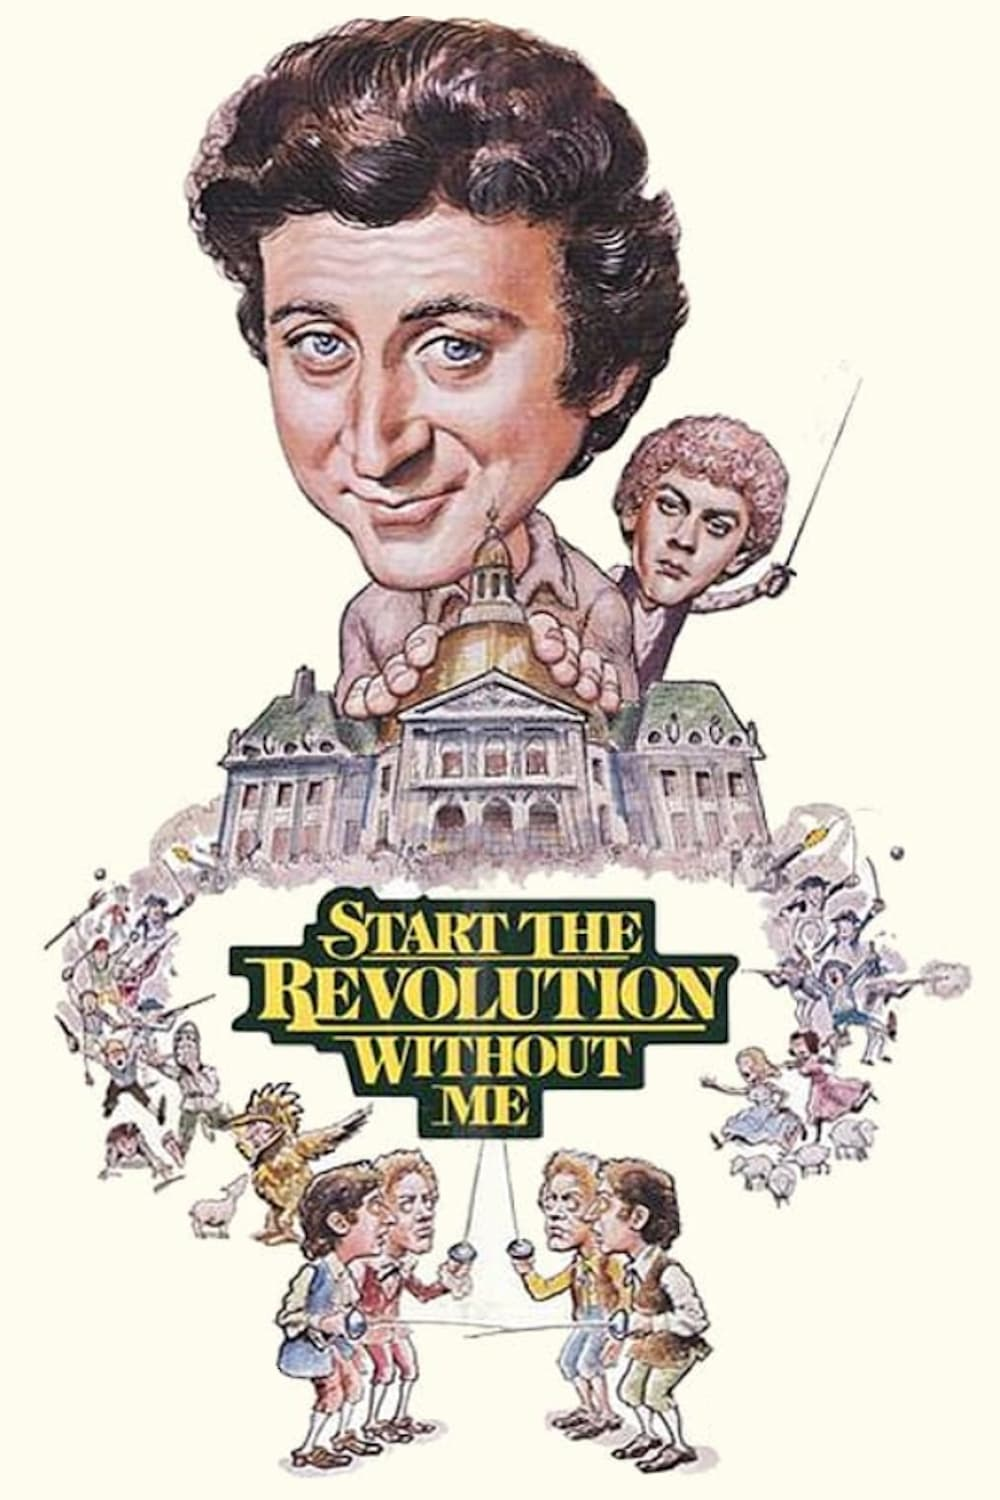 Start the Revolution Without Me (1970)